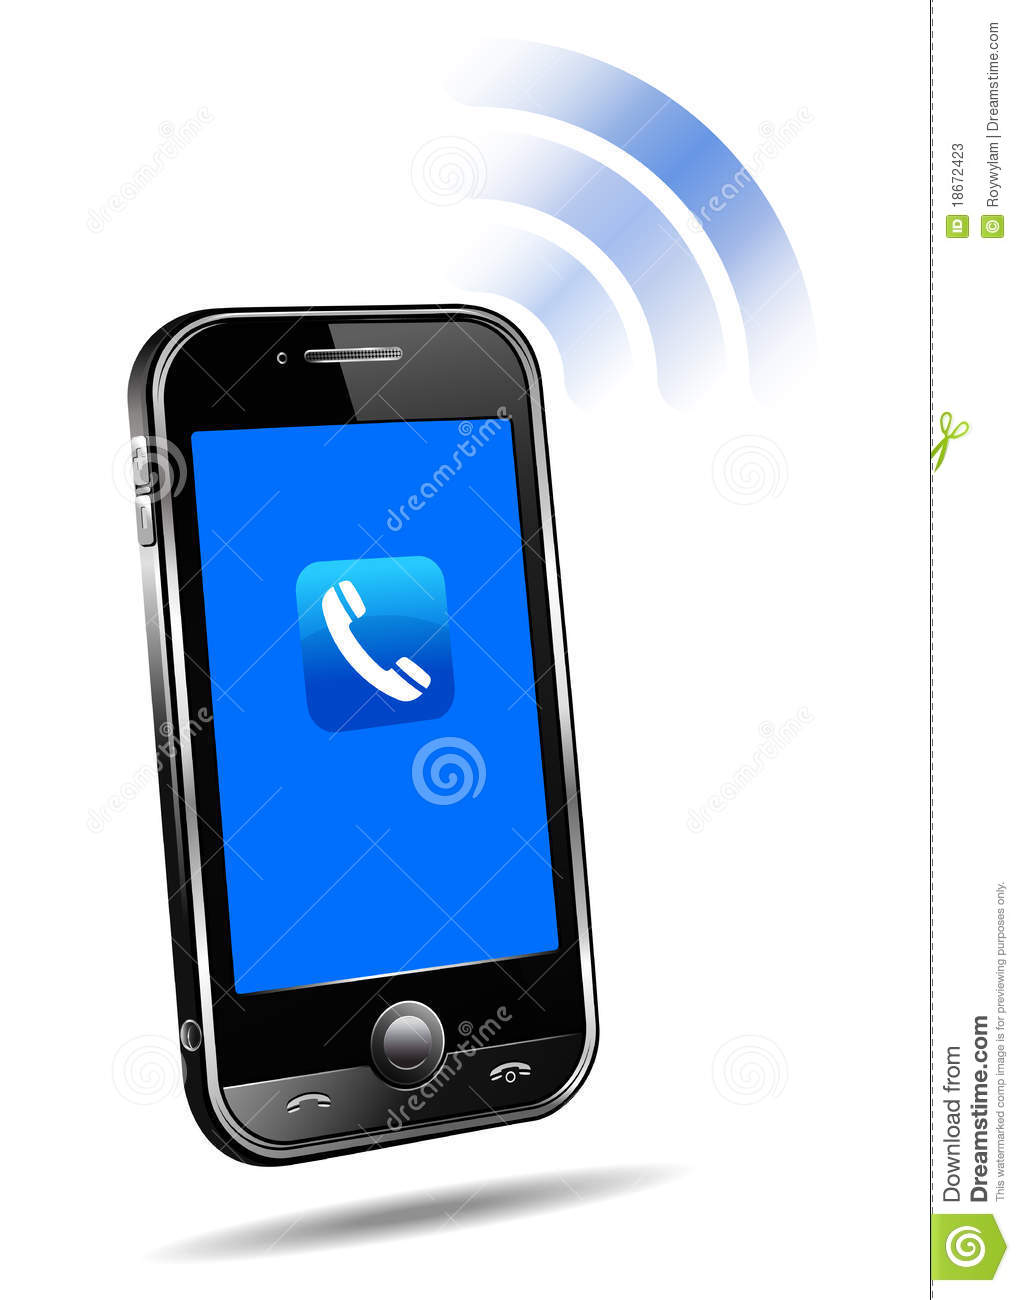 Ringing Cell Phone Clip Art Images & Pictures - Becuo